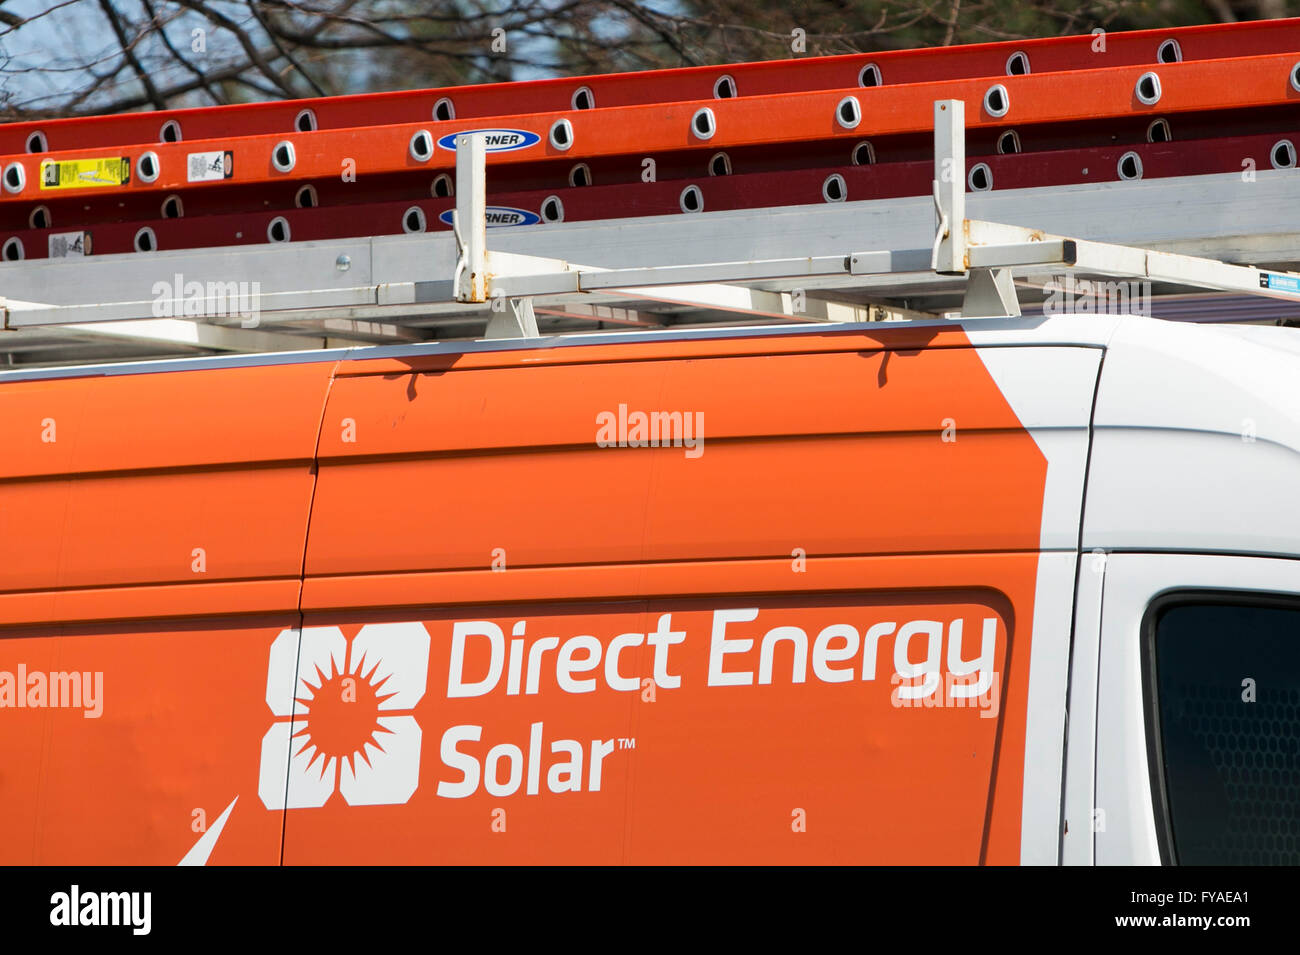 Work vans featuring Direct Energy Solar logos in Columbia, Maryland on April 10, 2016. - Stock Image